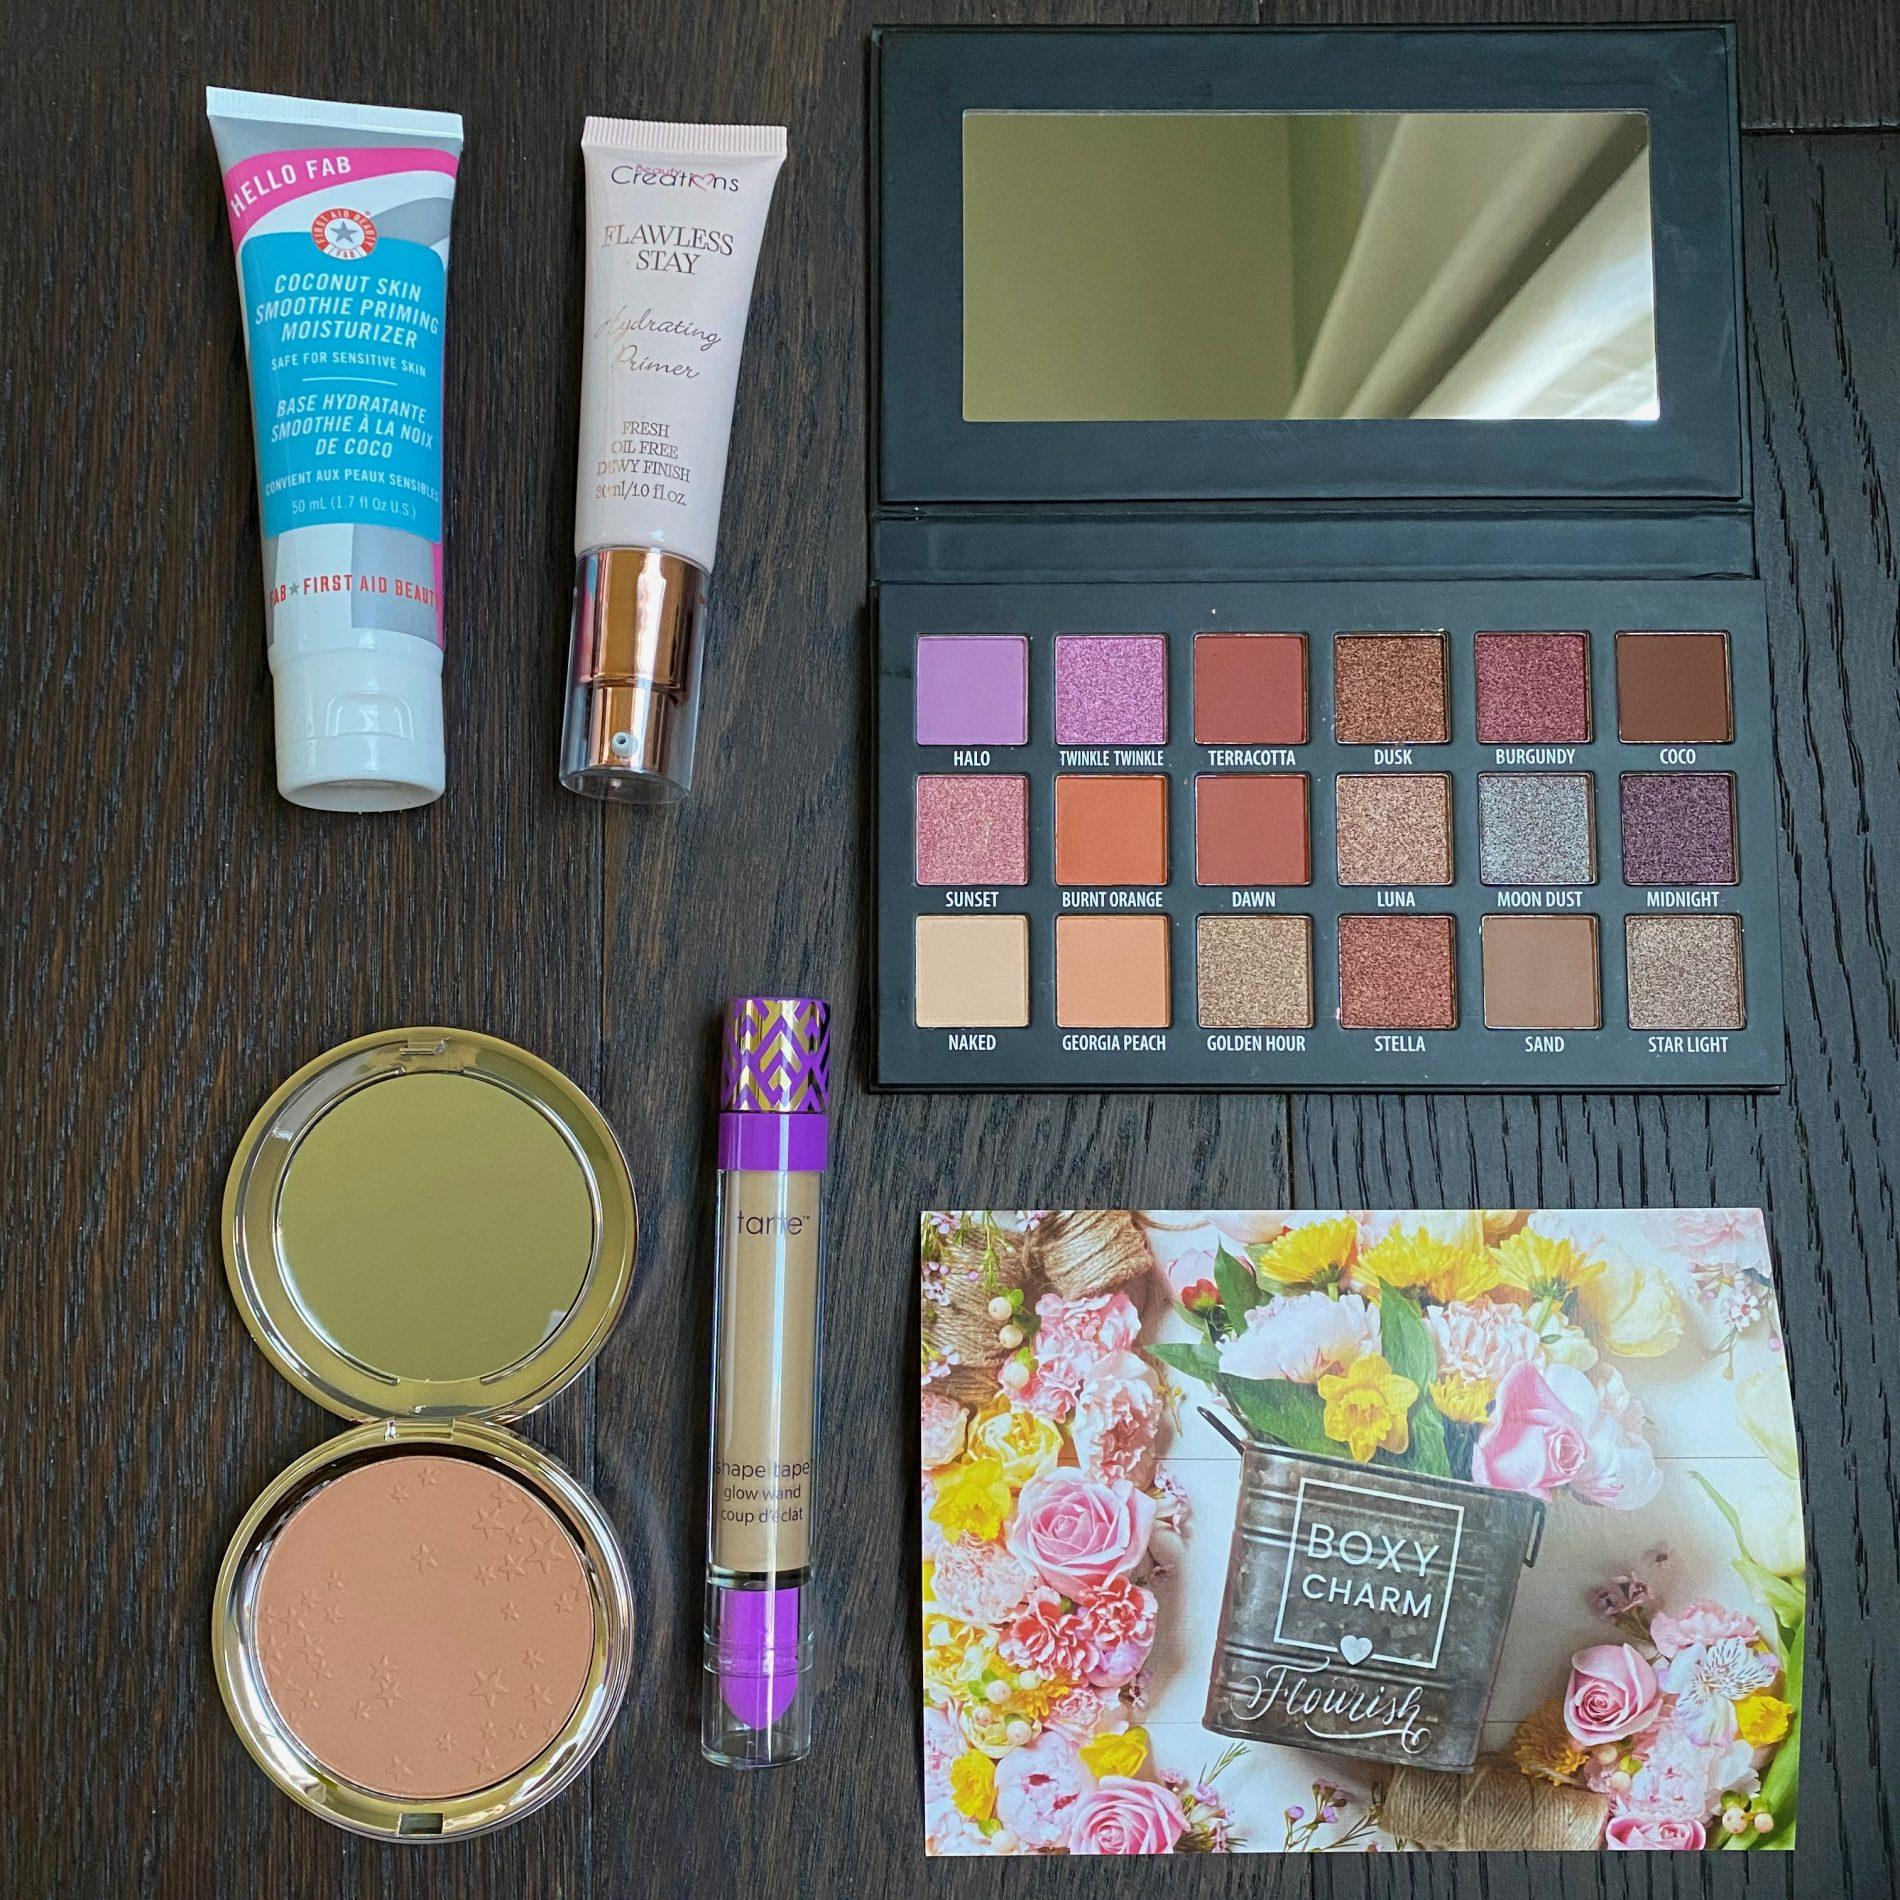 BOXYCHARM May 2021 Subscription Box Review + Coupon Code